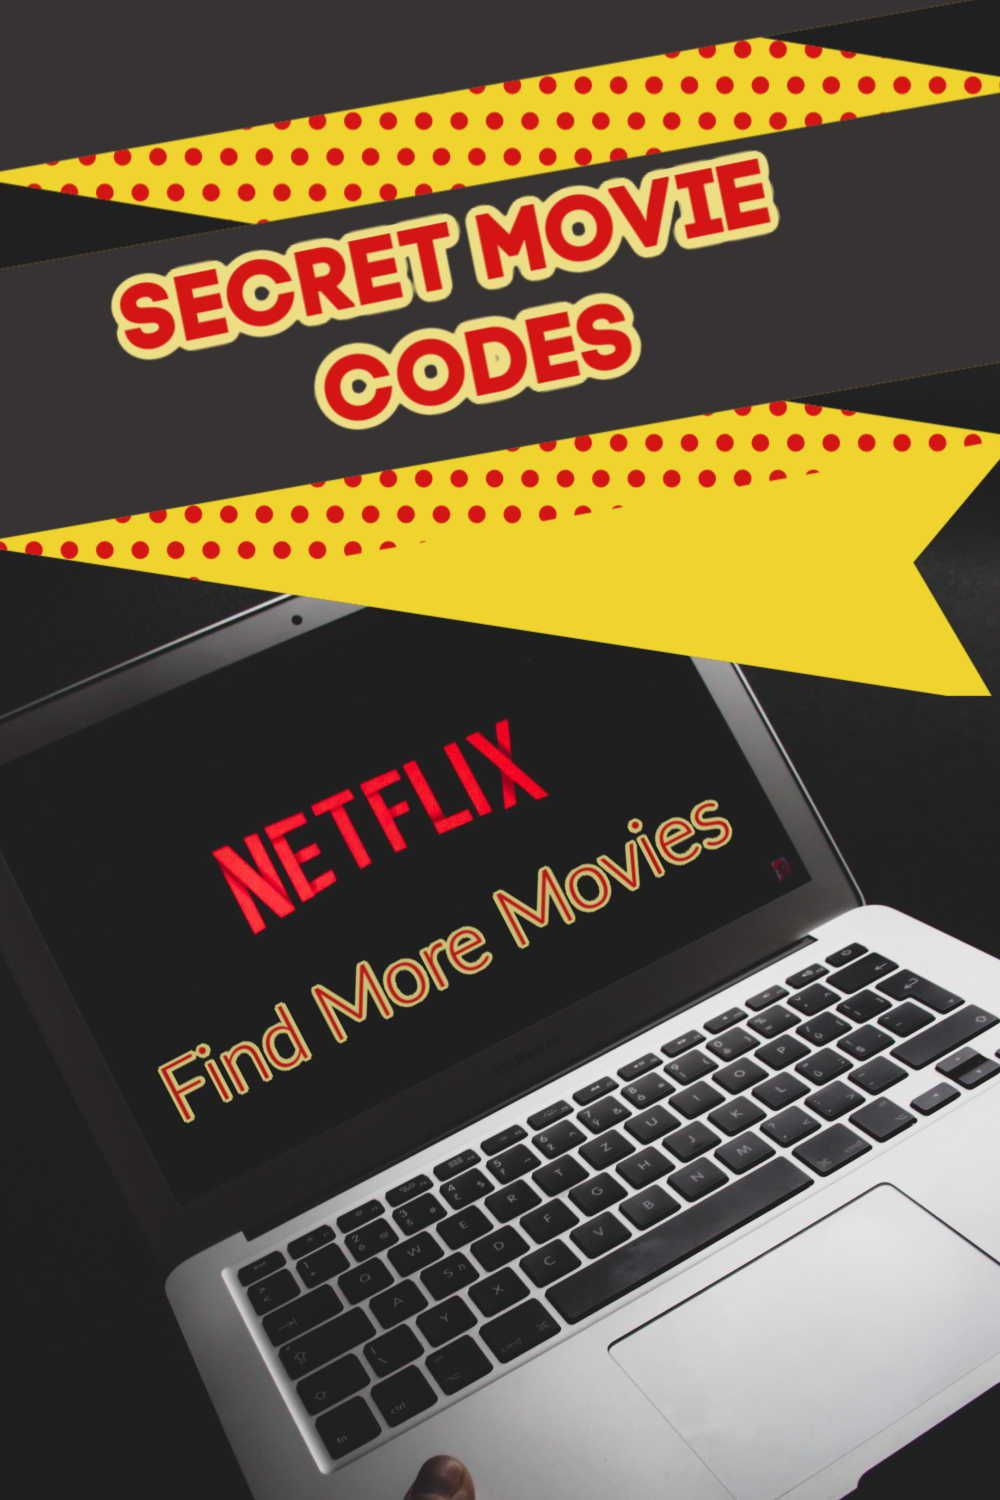 Get New Netflix Movies to Watch using Secret Codes to open